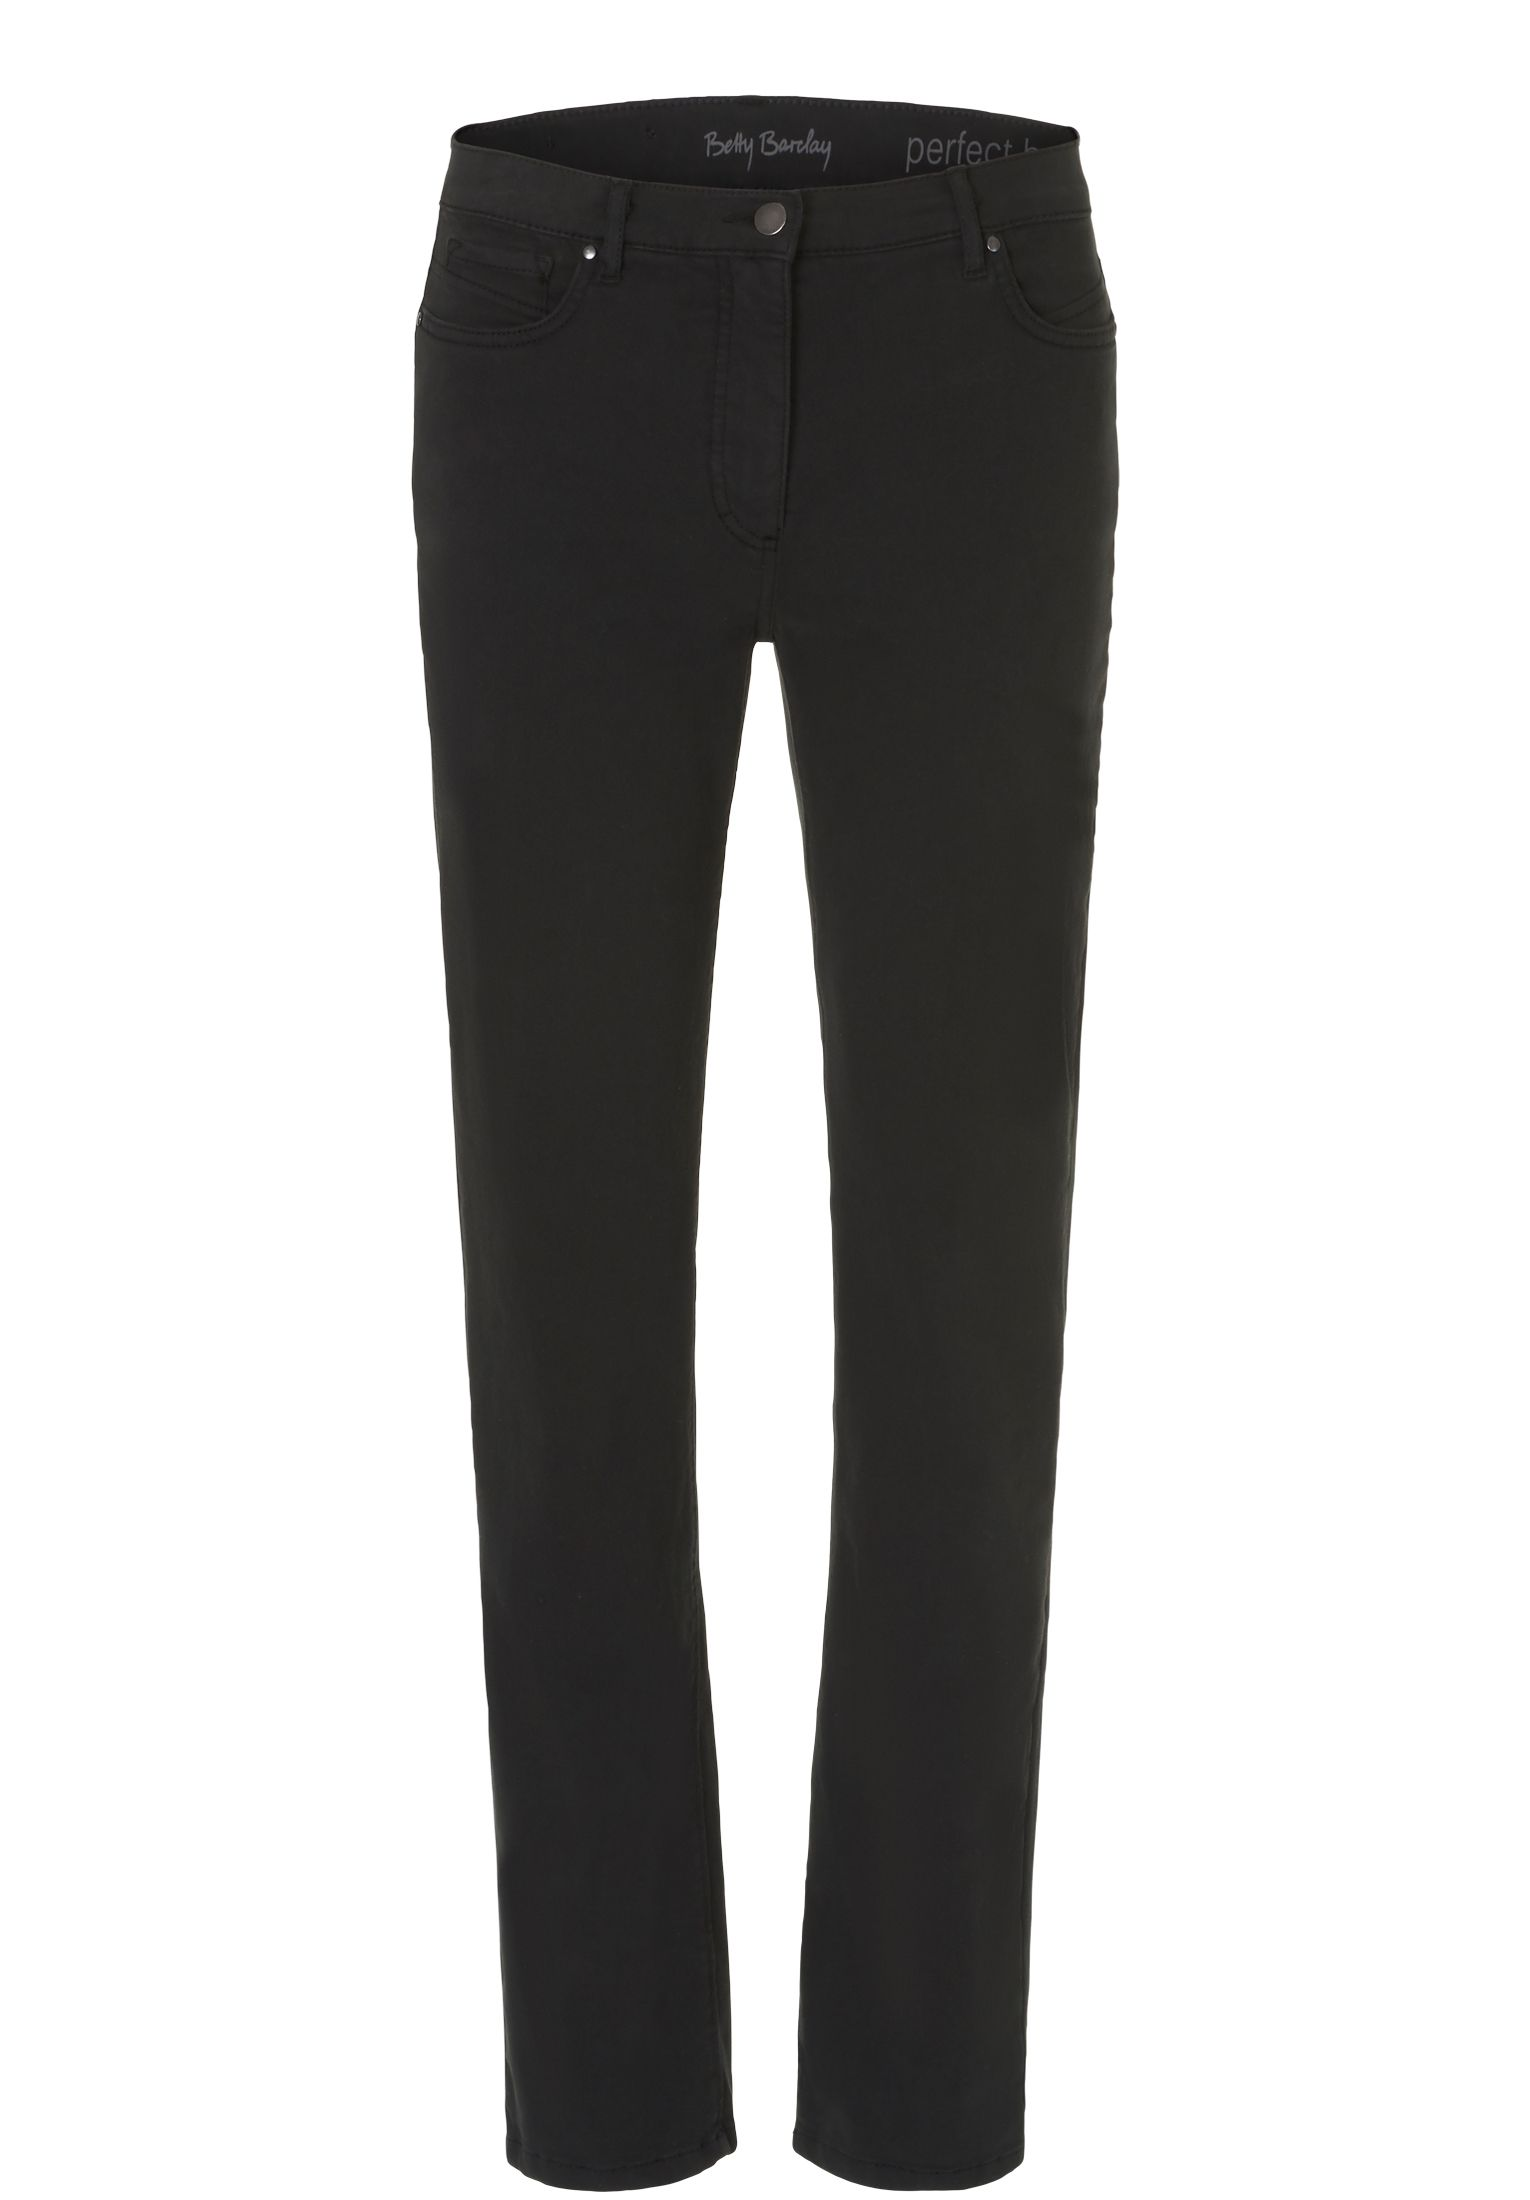 Betty Barclay Perfect Body jeans, Black